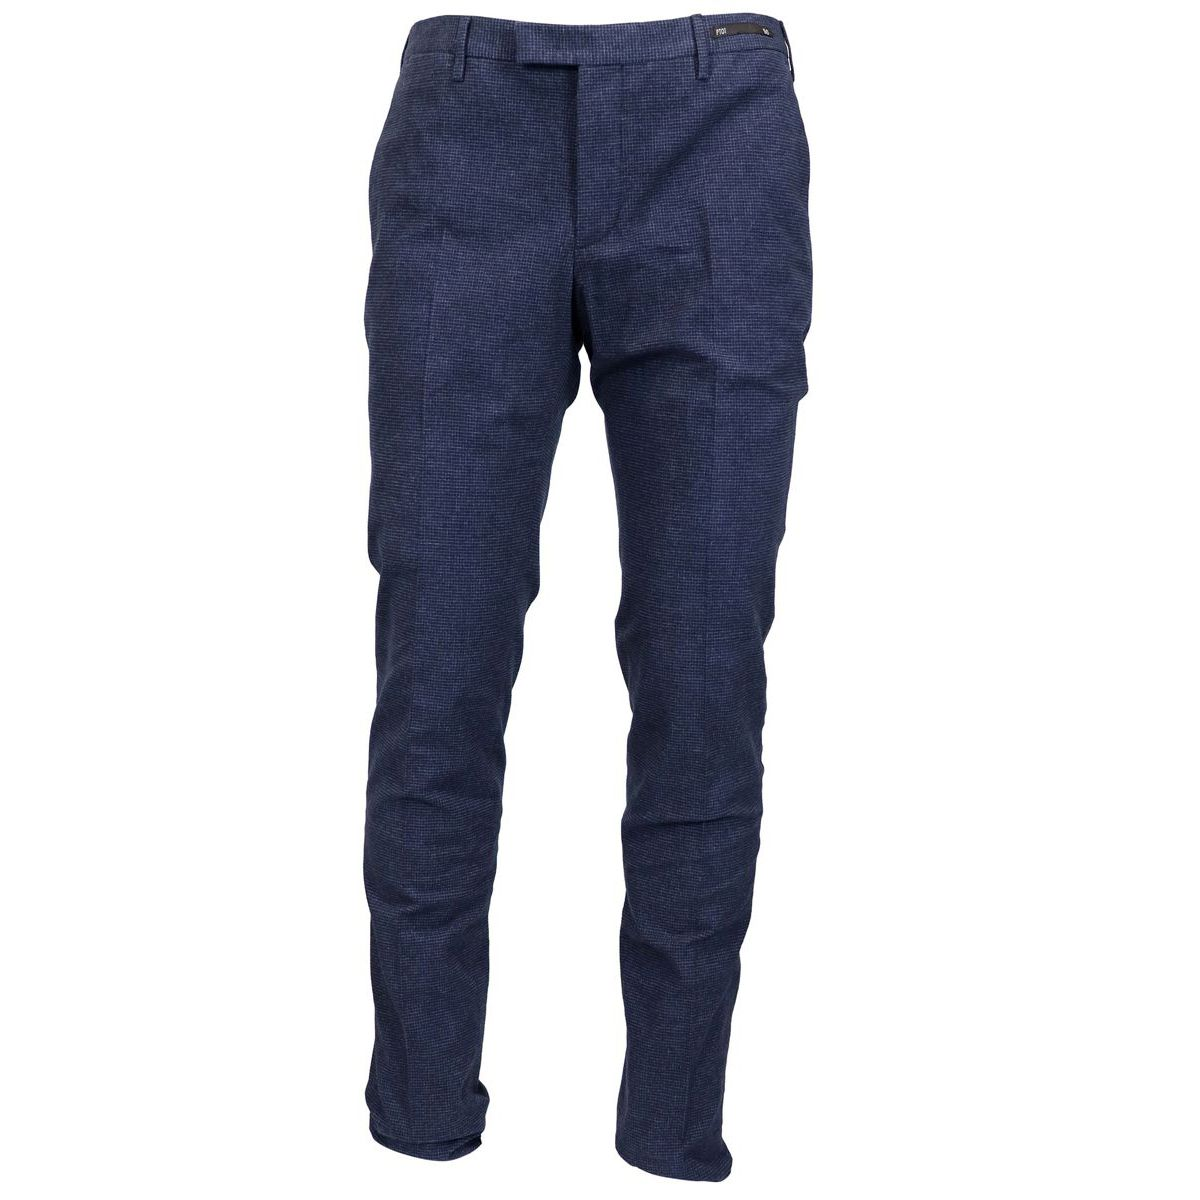 Skinny cotton trousers with america pockets Blue PT01